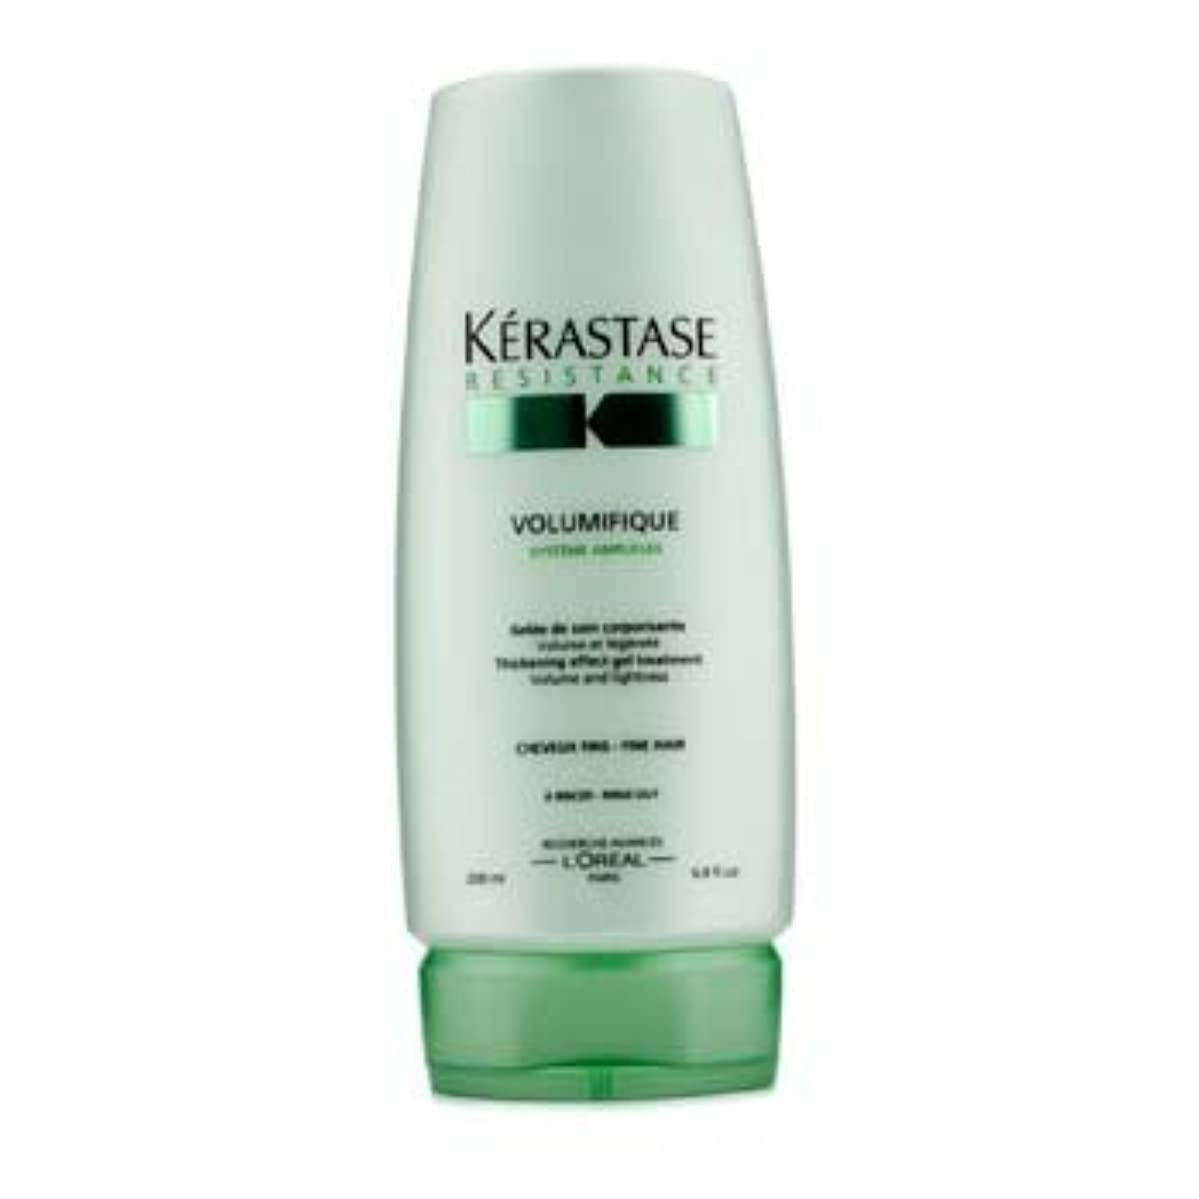 聴覚呼び起こす該当するケラスターゼ Resistance Volumifique Thickening Effect Gel Treatment (For Fine Hair) 200ml/6.8oz並行輸入品